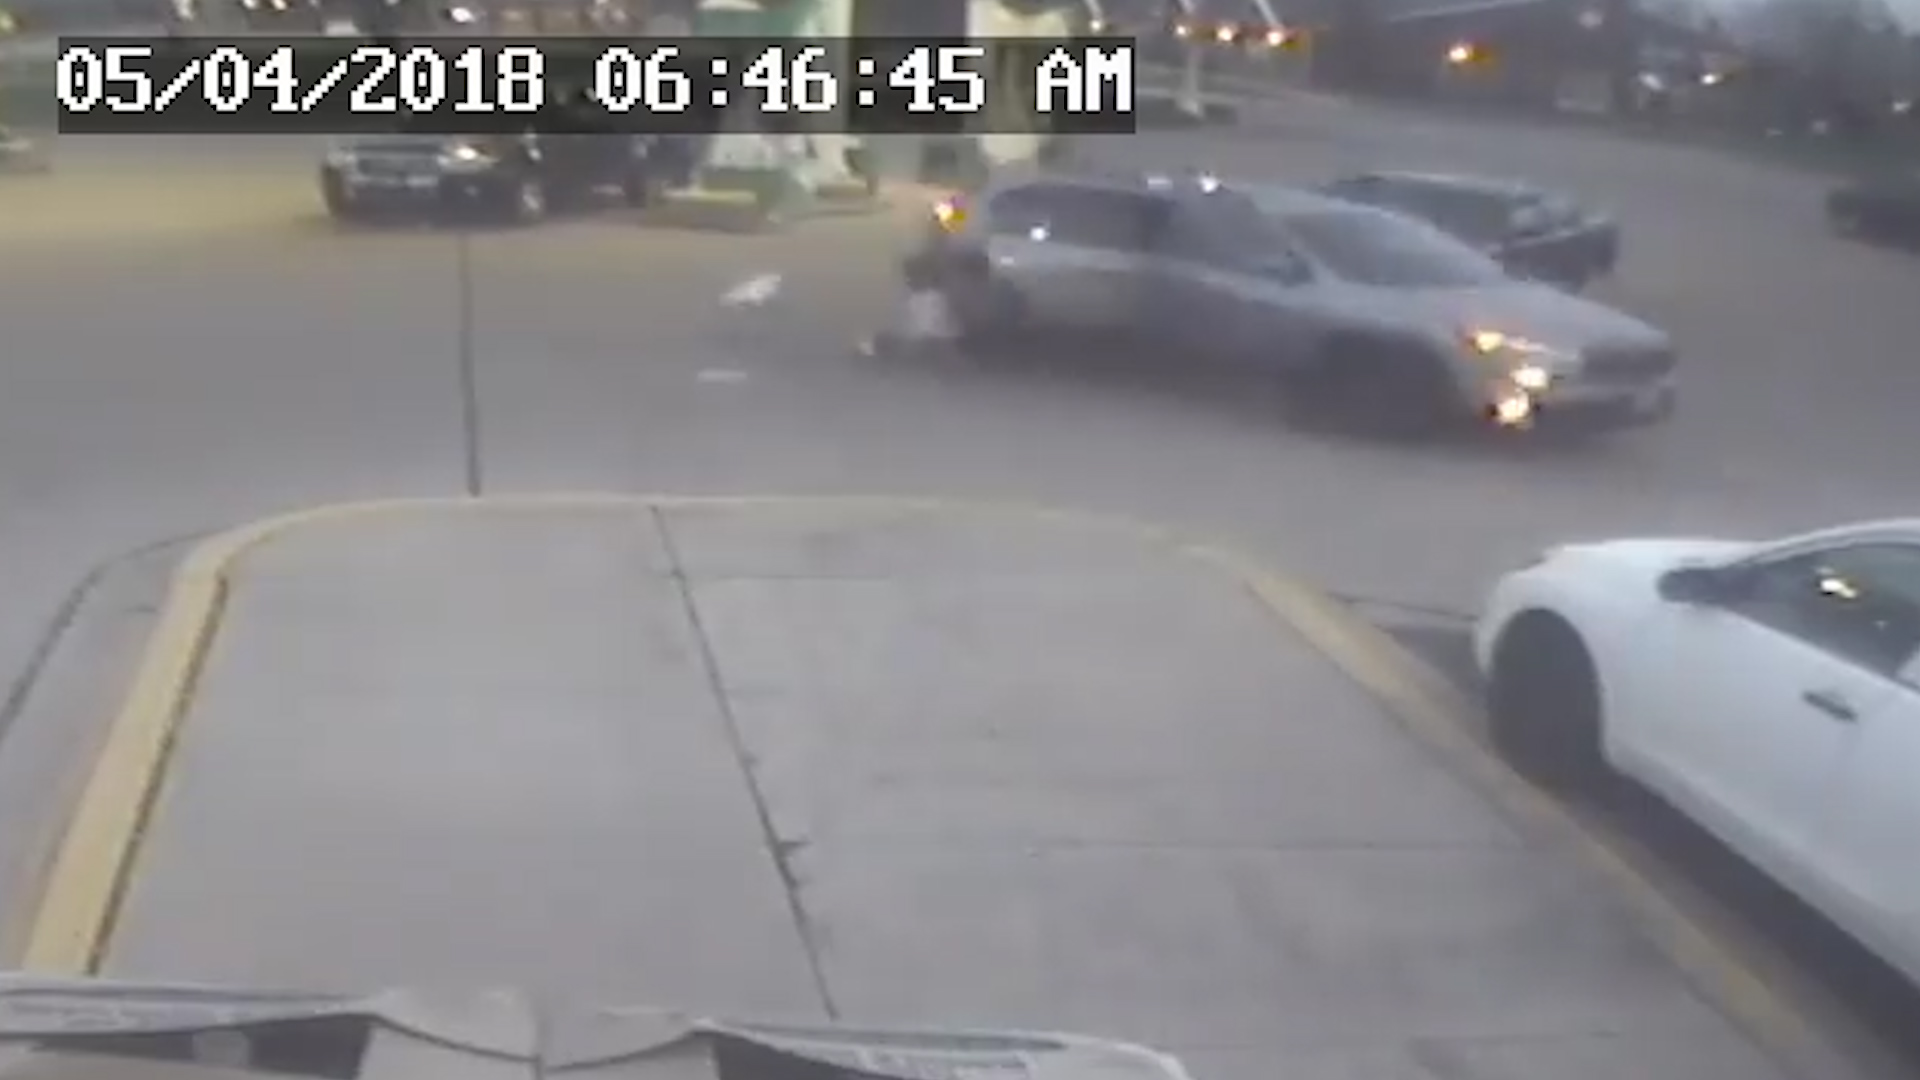 Video shows 11-year-old escape from car during carjacking